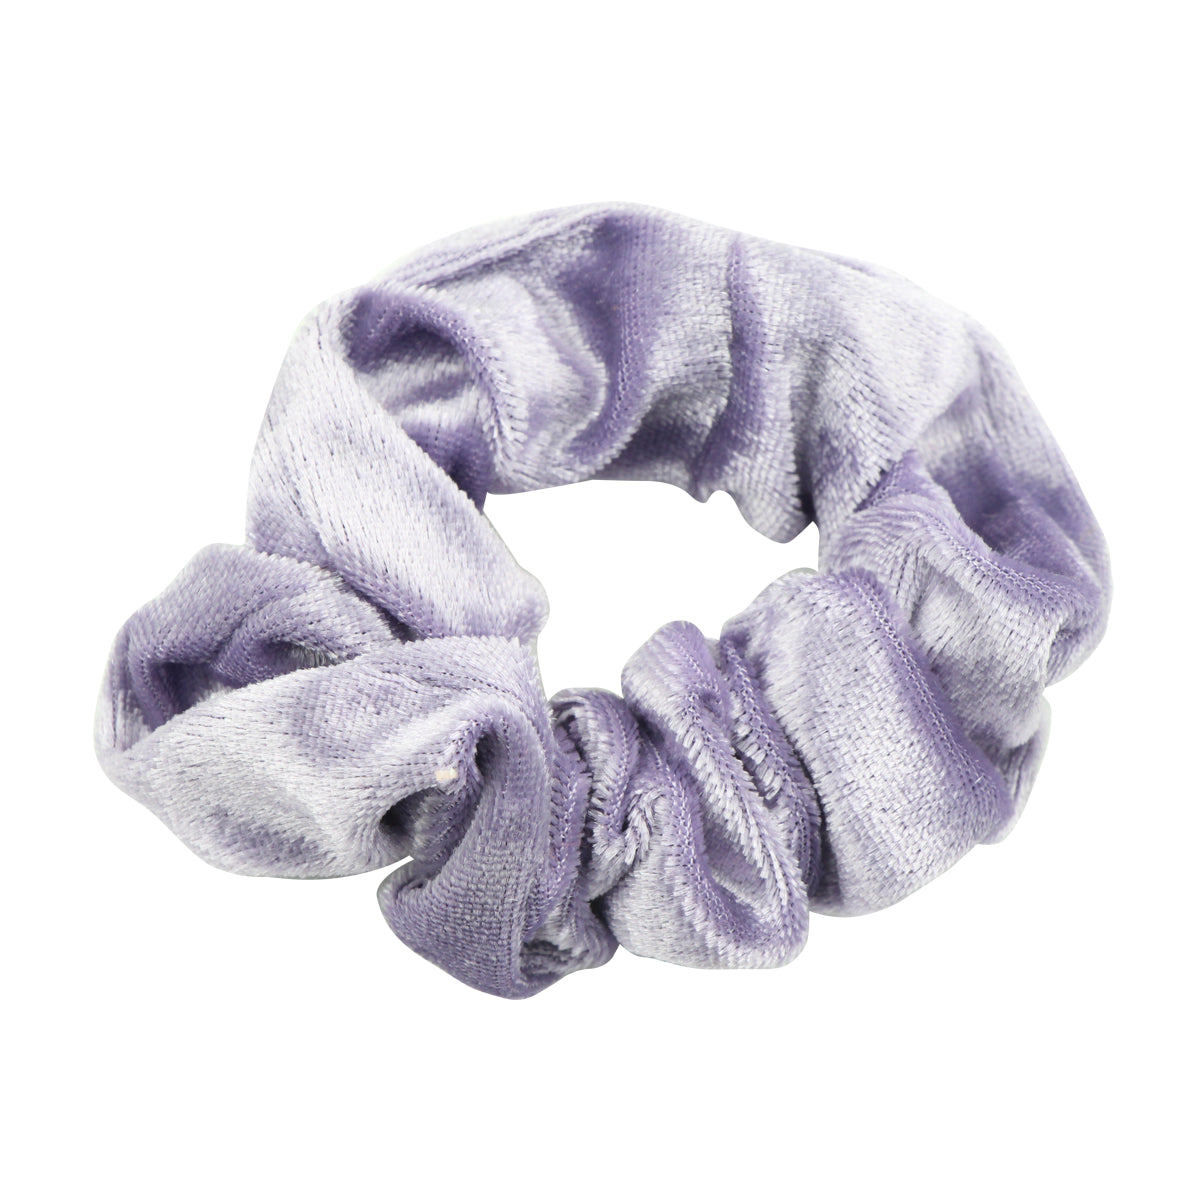 eco friendly hair scrunchies custom purple velvet elastic scrunchy hair band adult women hair accessories  5495 - SOHOBUCKS CO.,LIMITED